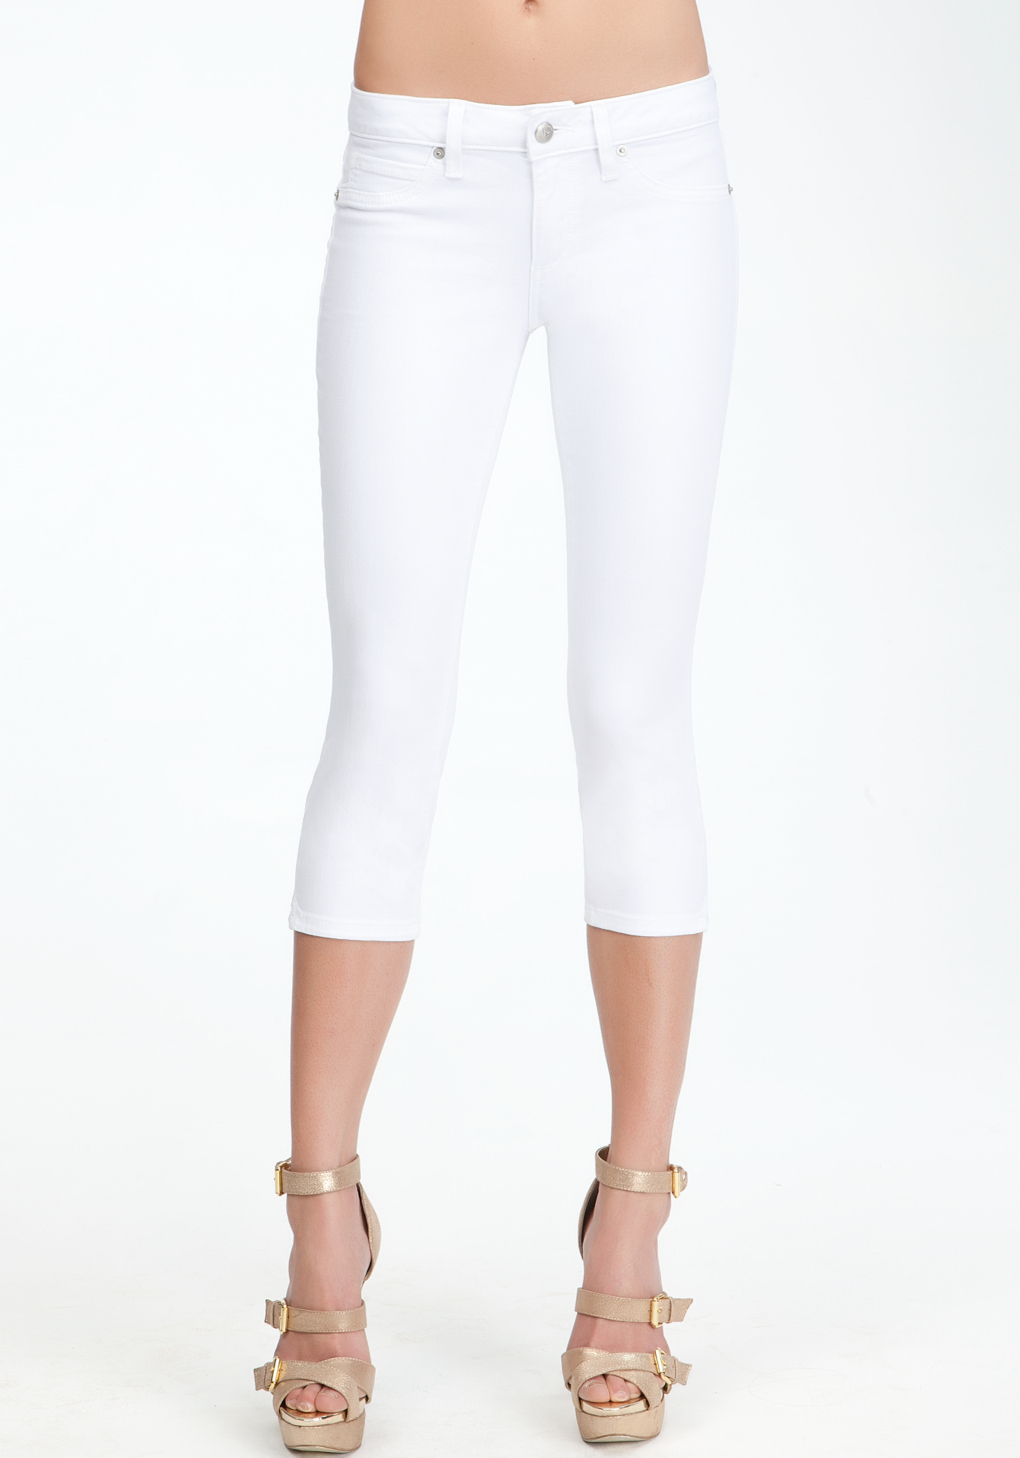 Bebe Side Slit Capri Jeans in White | Lyst